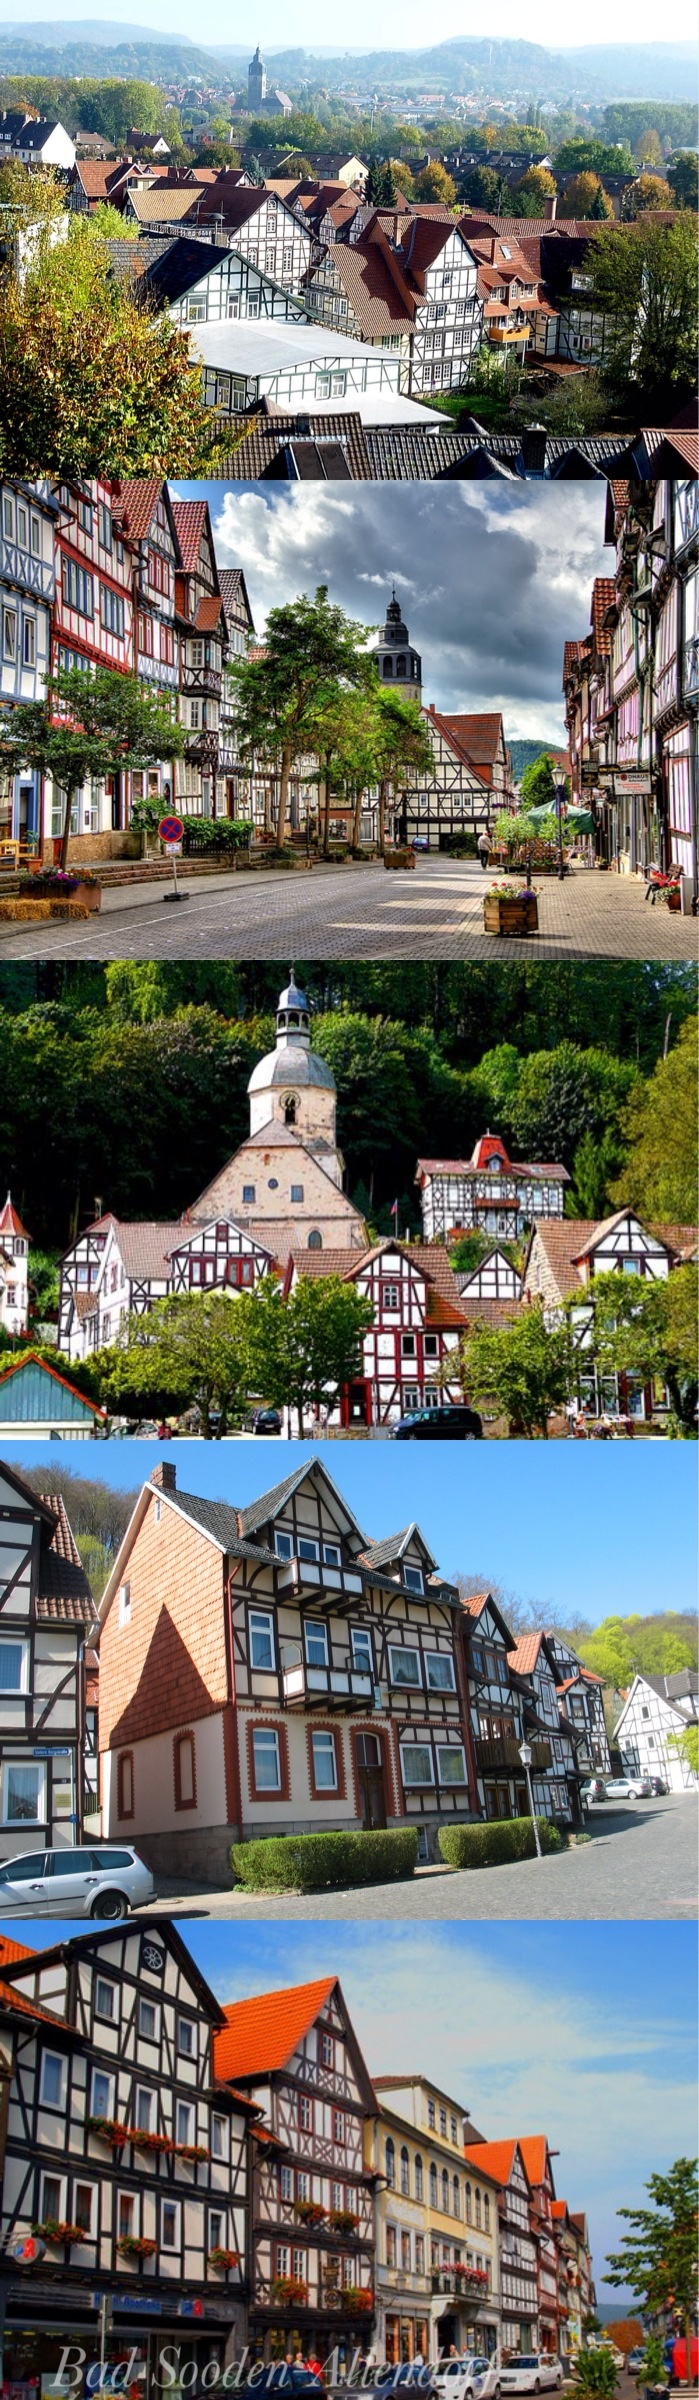 Bad Sooden-Allendorf is a town in the Werra-Meißner-Kreis in Hesse, Germany. Bad Sooden-Allendorfis the first town in Germany which is taking a payment from horseowners - 750 € /horse- and people which do not own a horse but rie one and pay for this.